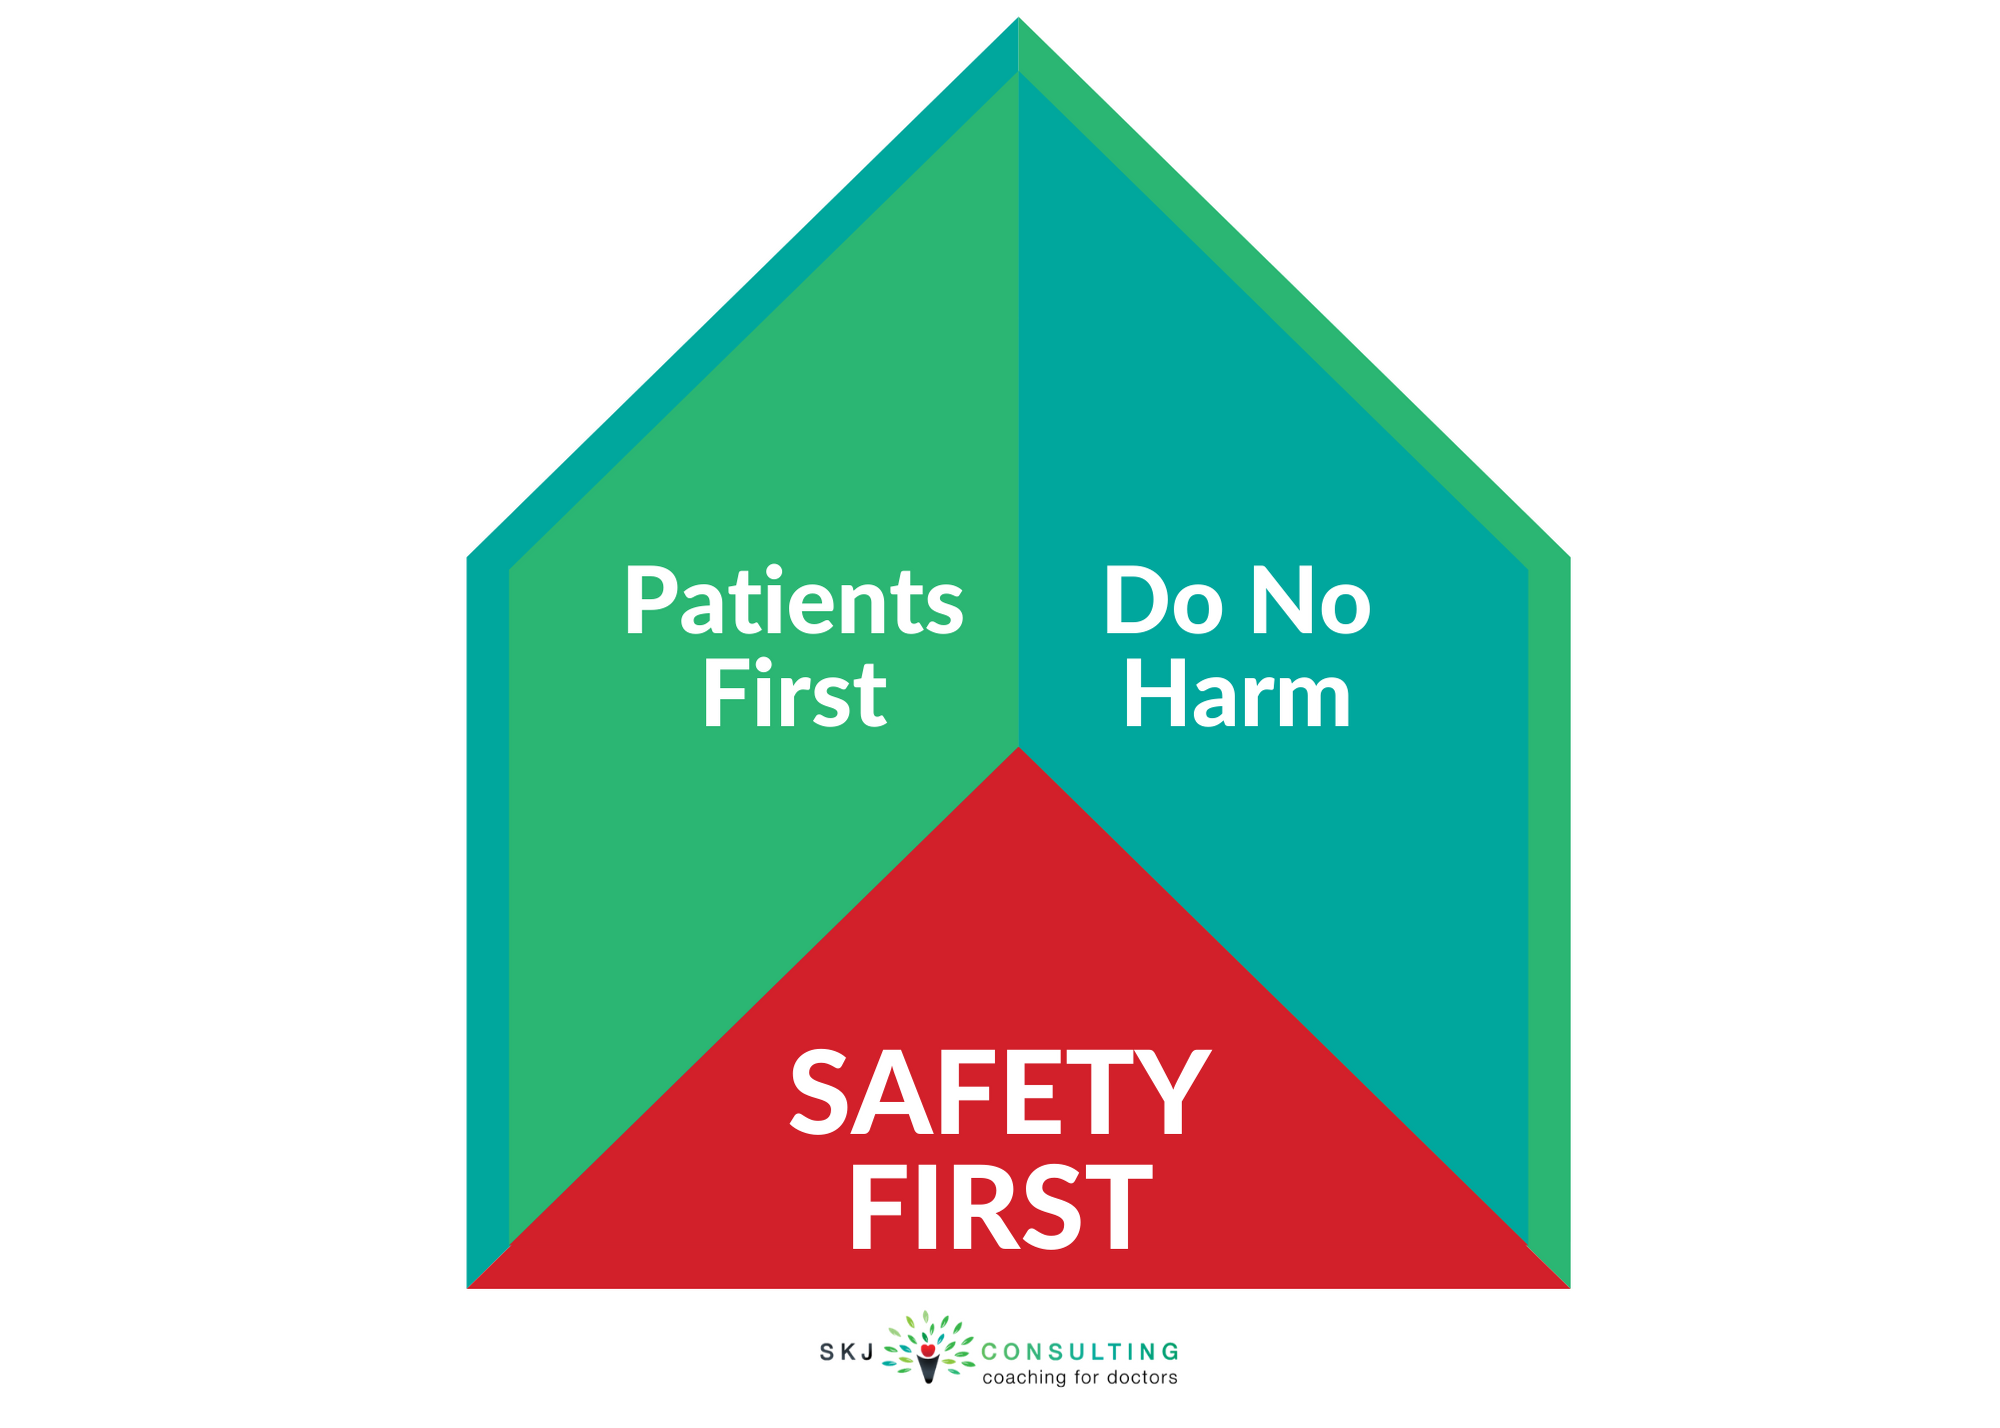 House image with words 'Safety First' as foundation, 'Patients First' and Do No Harm' as sides/walls